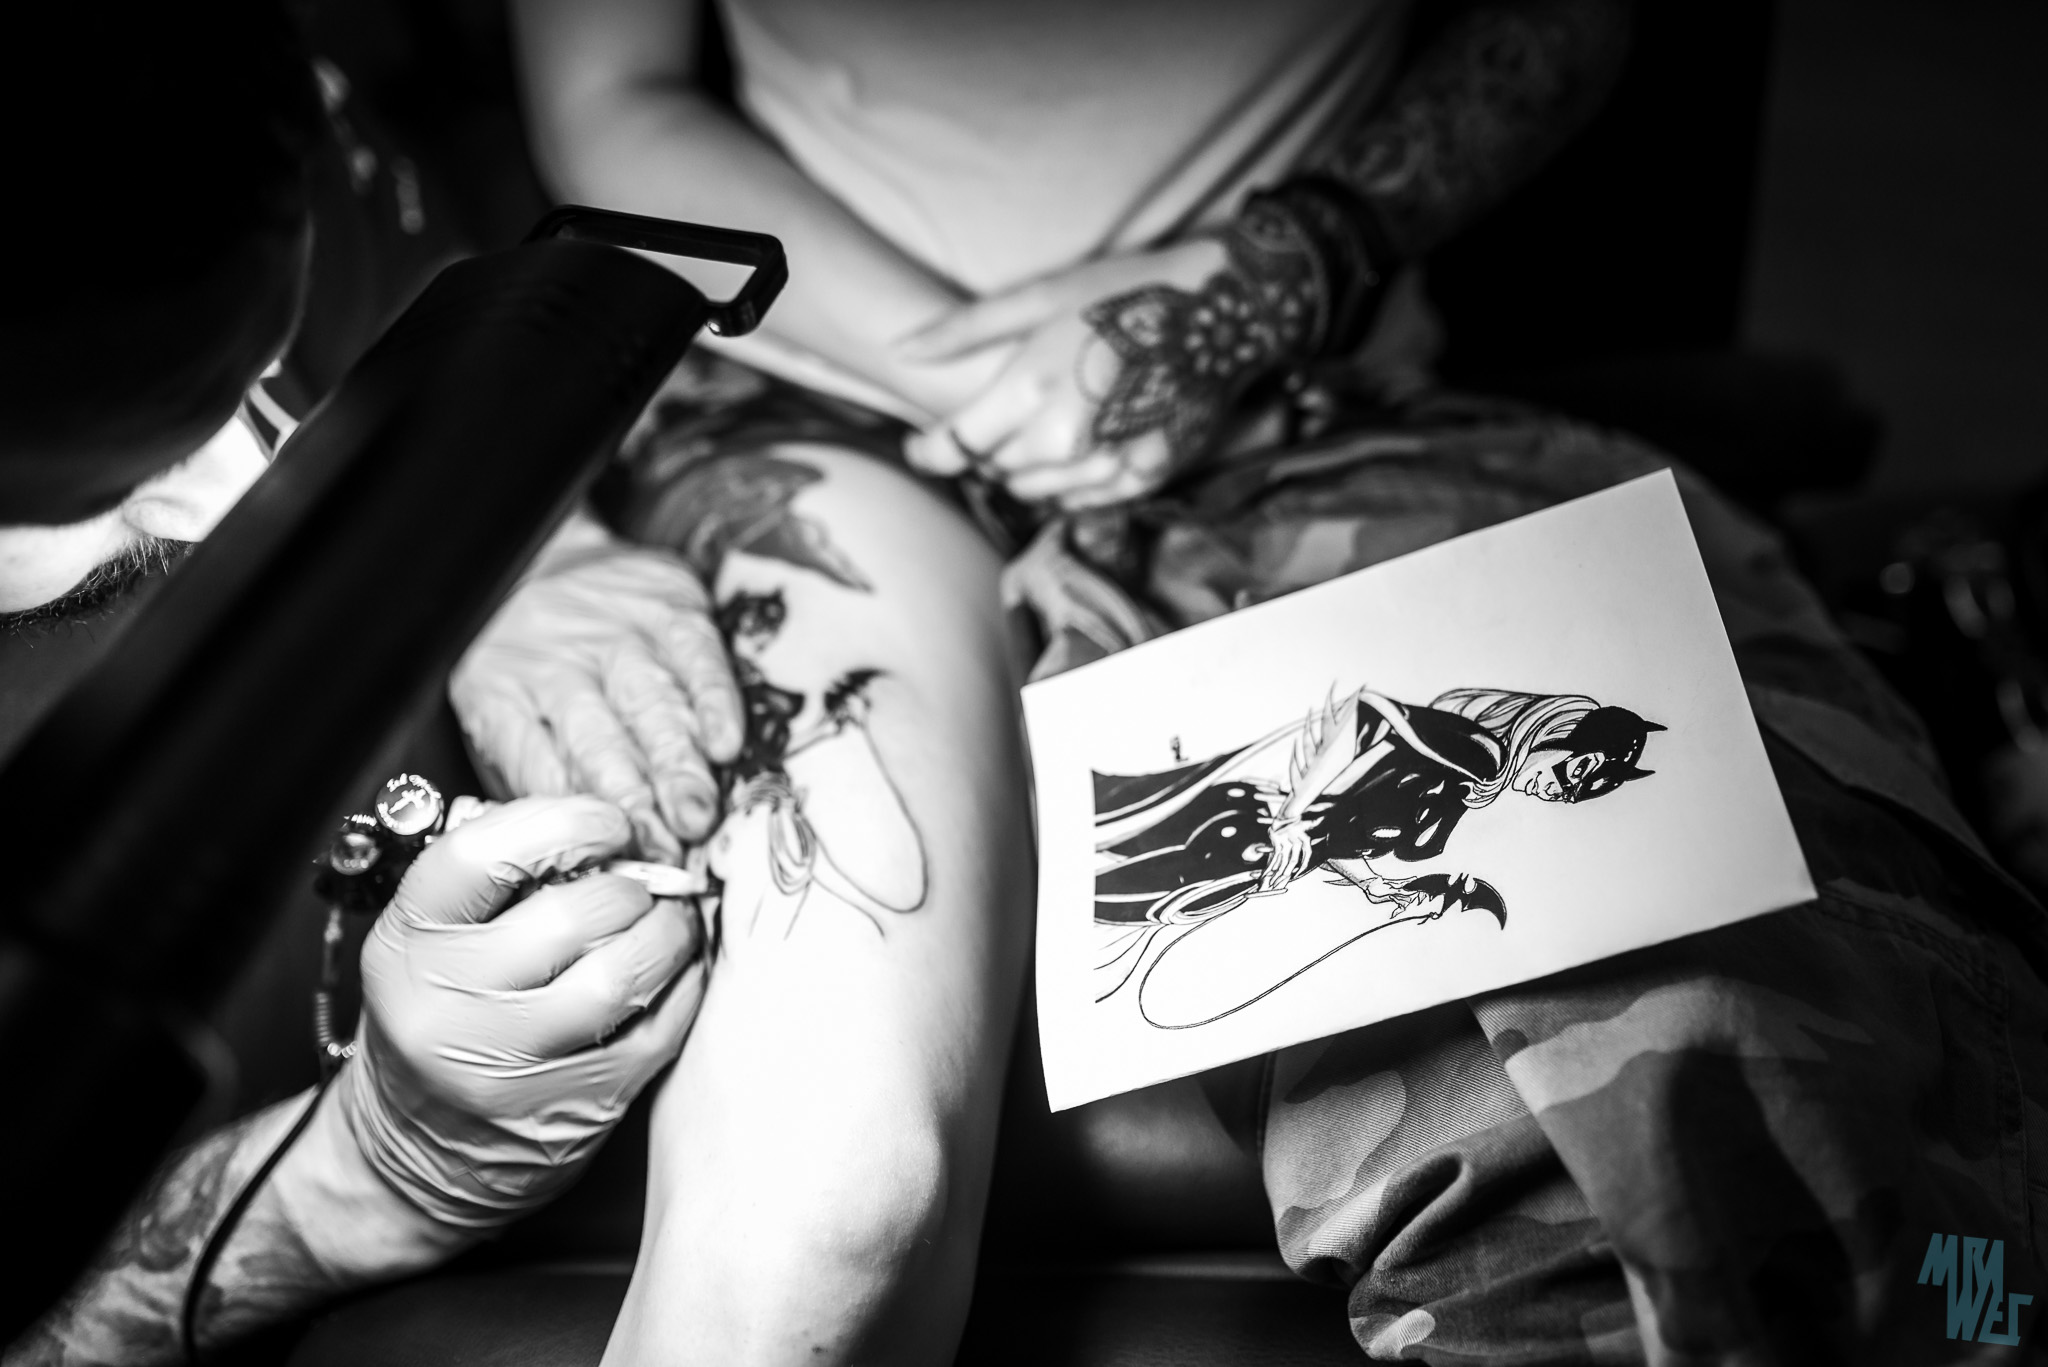 Nat_tattoo_Tešlo__029__web